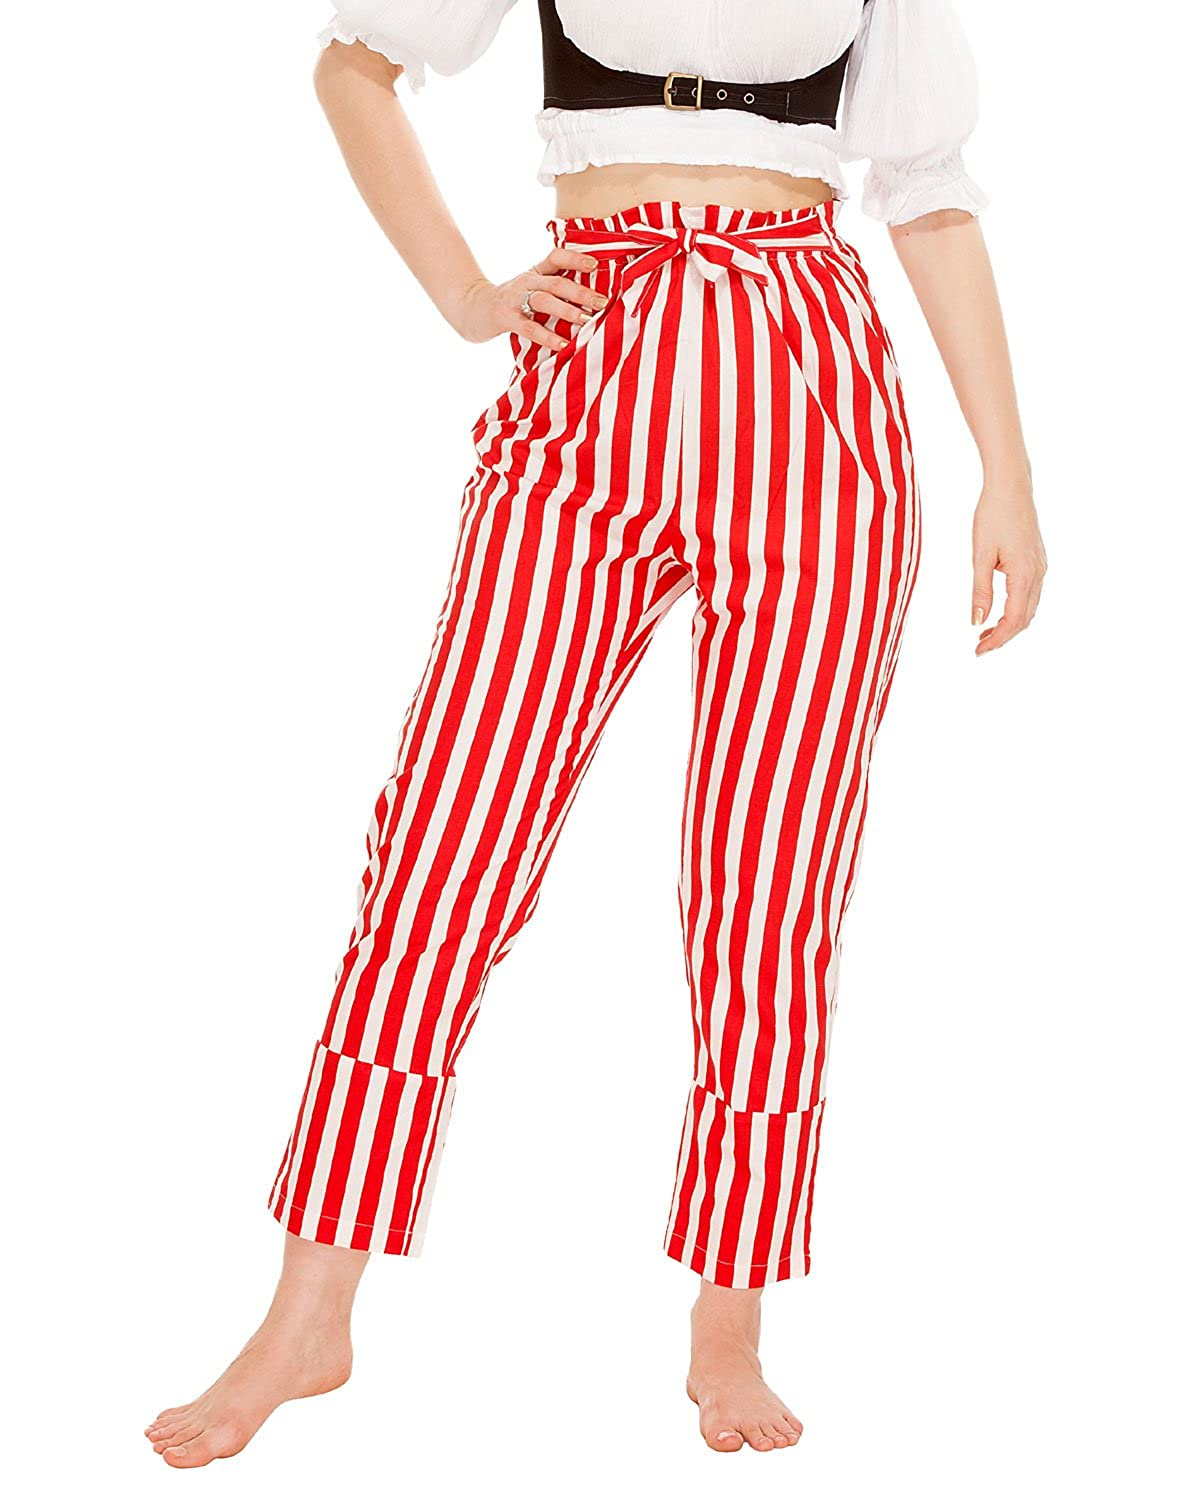 Women's Pirate Wench Cotton Red & White Striped Self-Tie Cosplay Costume Pants by ThePirateDressing - DeluxeAdultCostumes.com